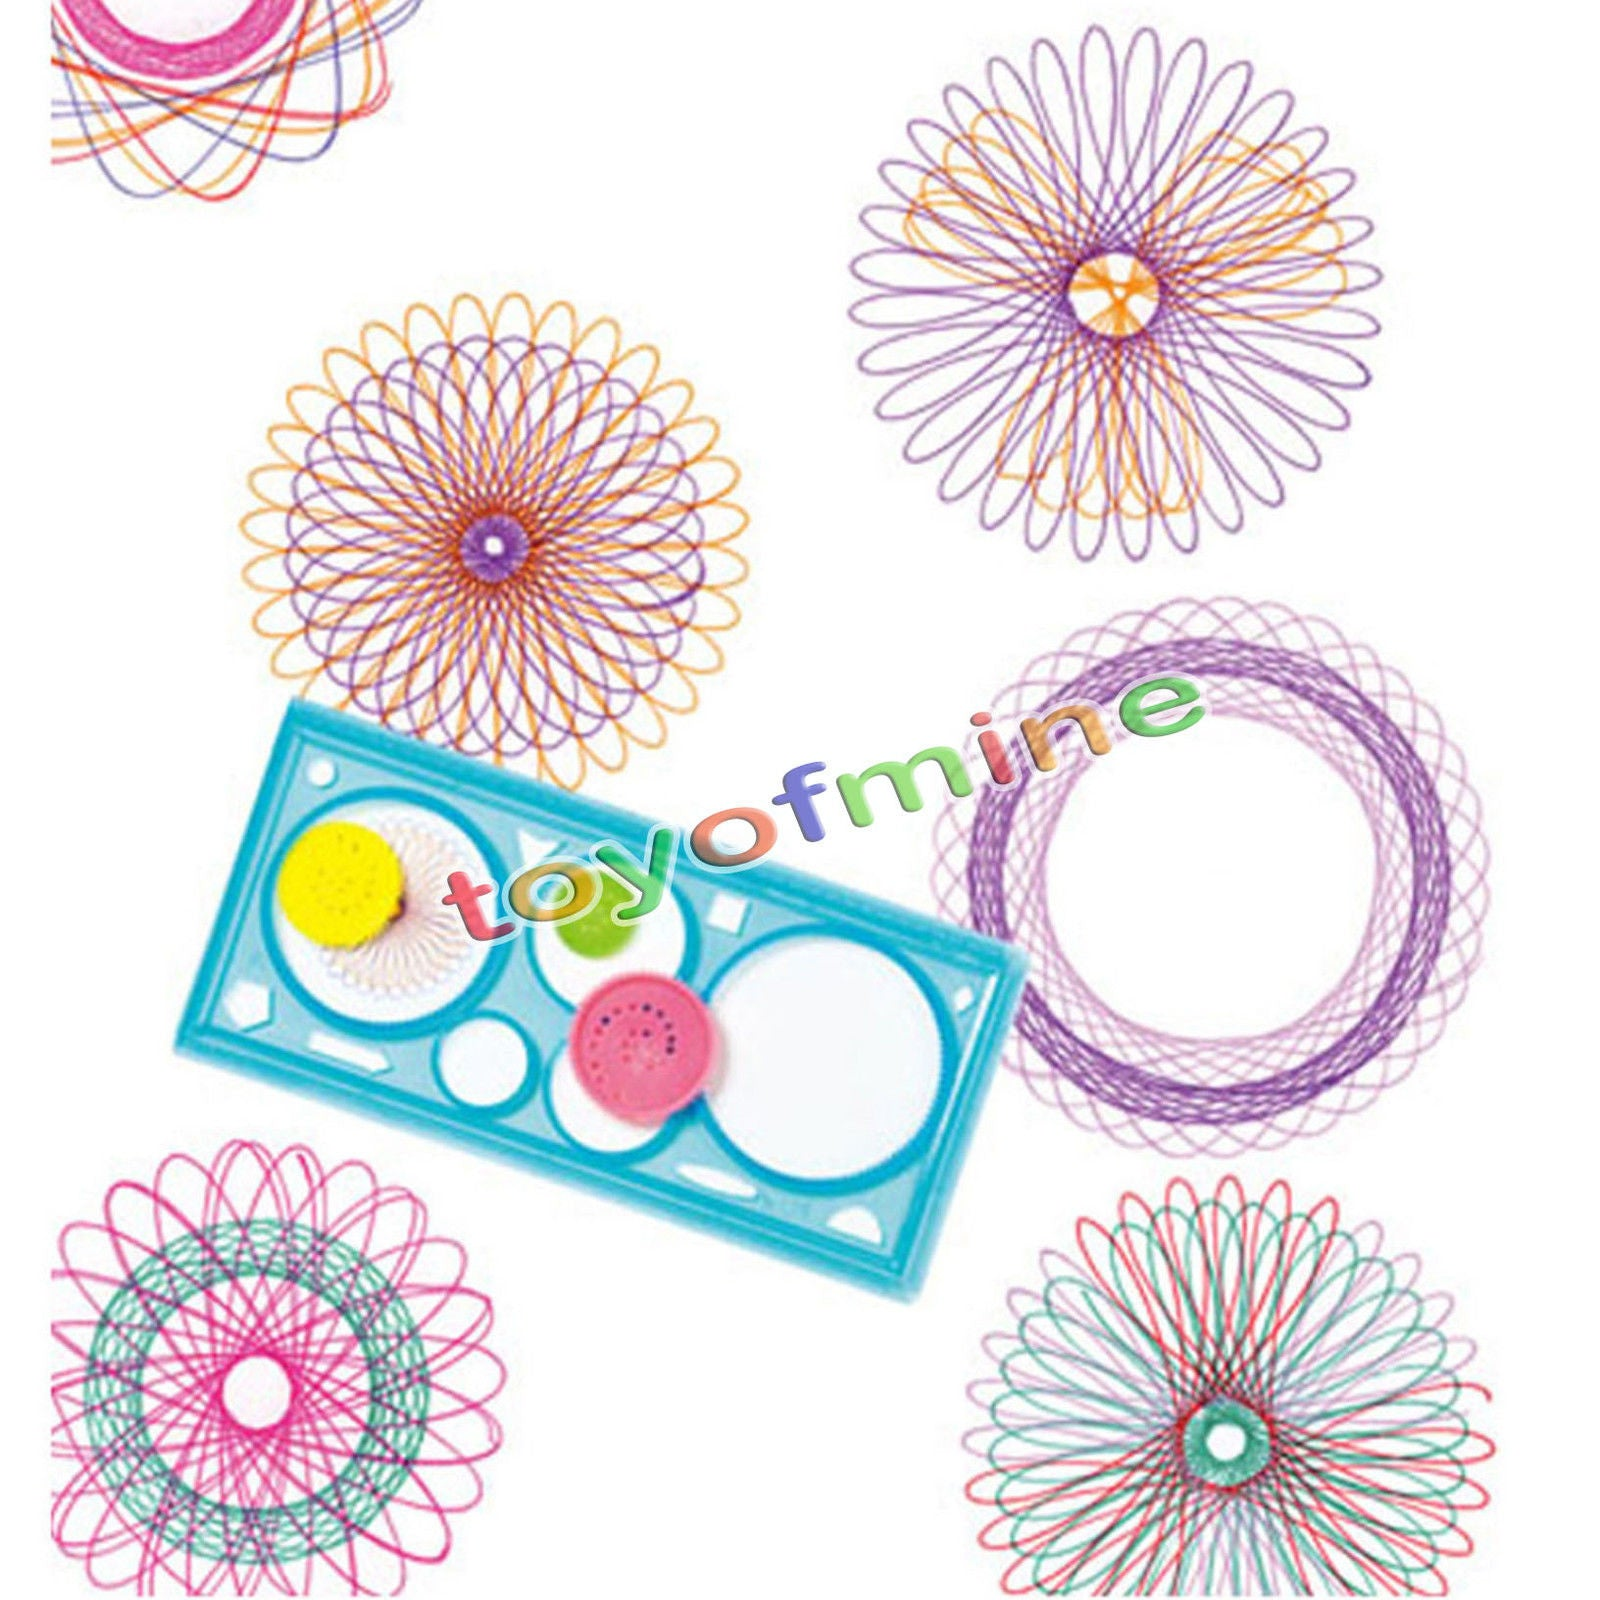 Spirograph Geometric Ruler Drafting Tools Stationery For Students Drawing Set Learning Art Sets Creative Gift For Children High Quality And Inexpensive School & Educational Supplies